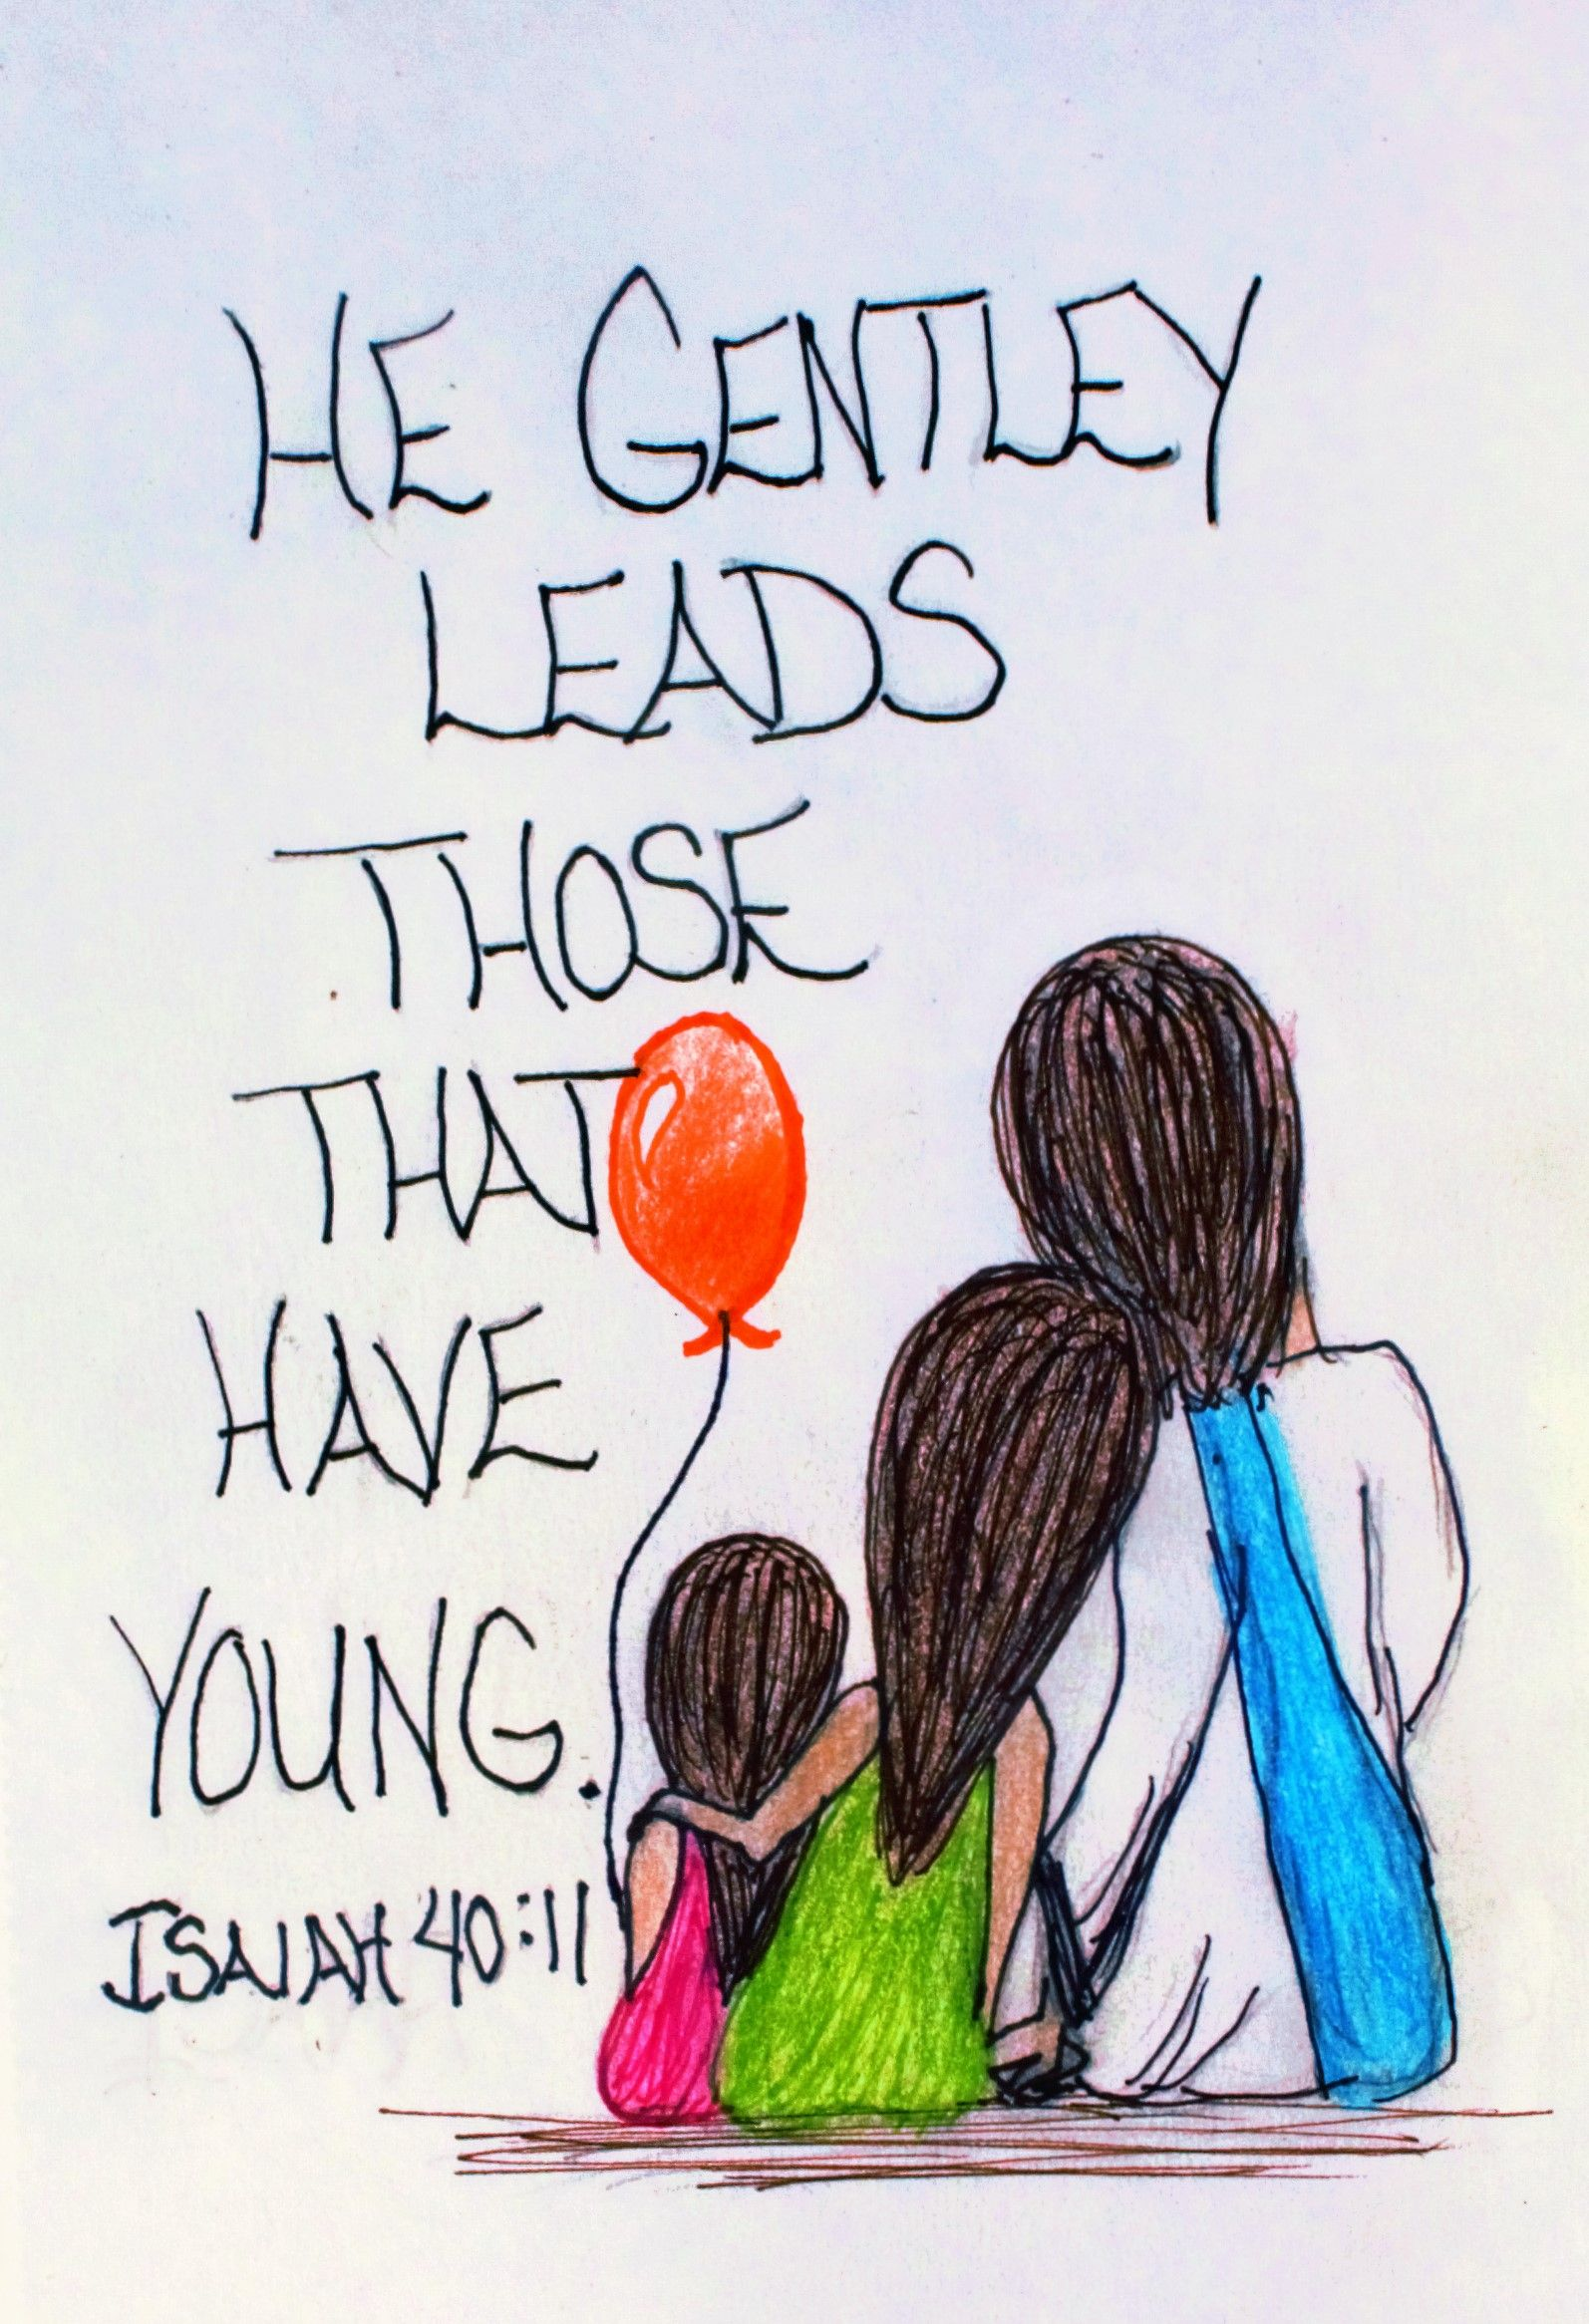 He gently leads those that have young.\